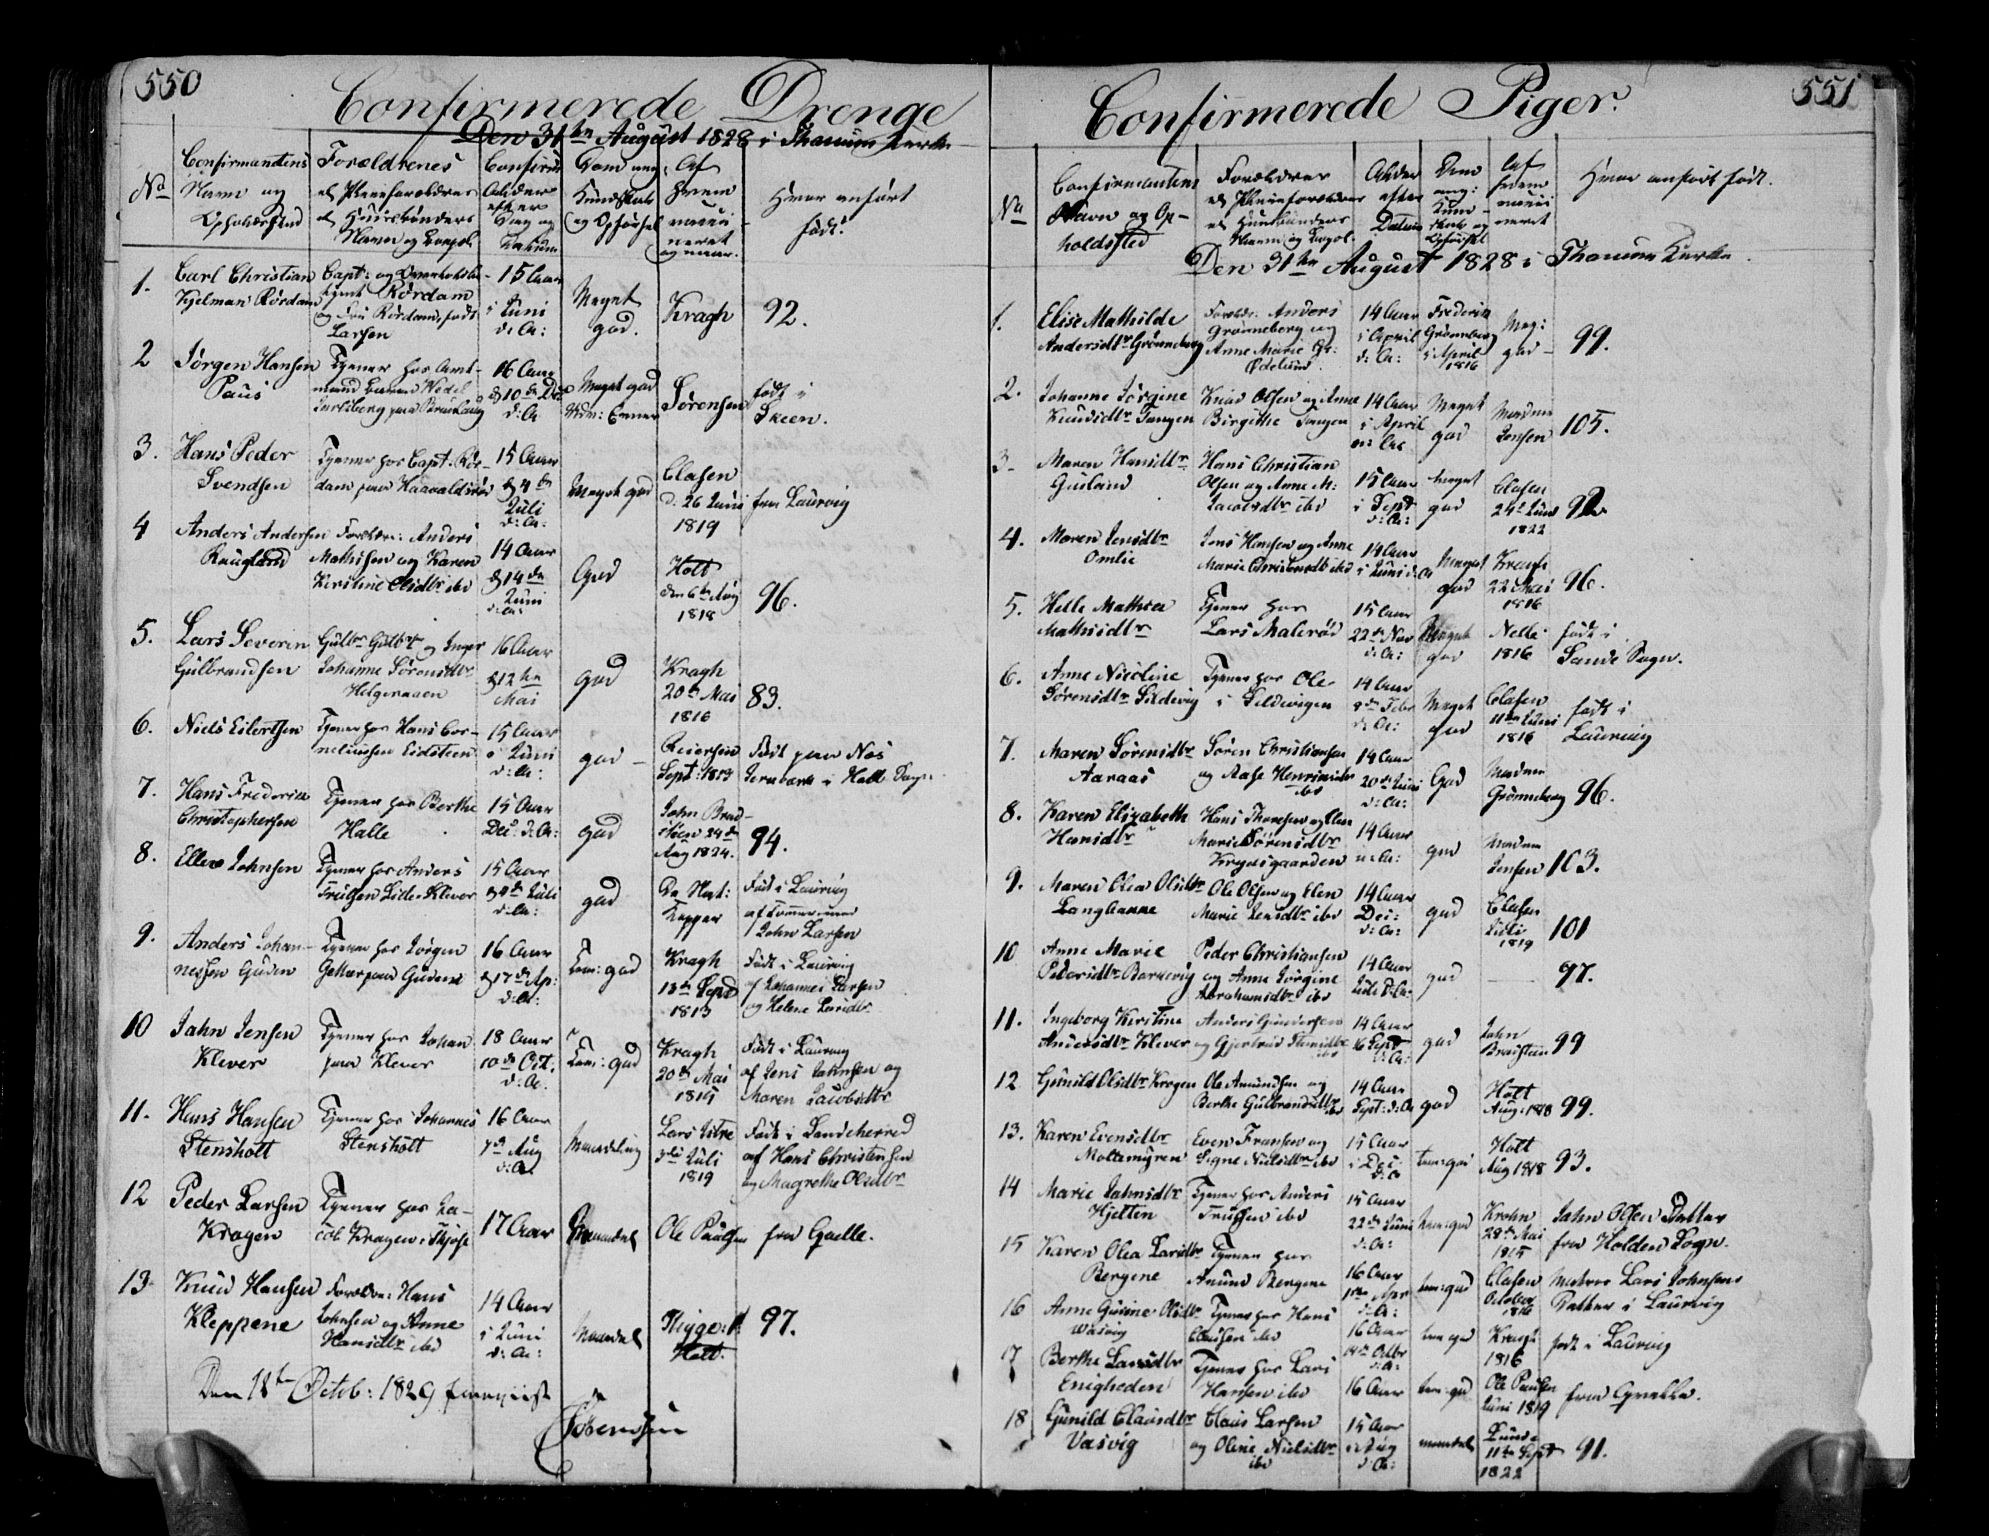 SAKO, Brunlanes kirkebøker, F/Fa/L0002: Parish register (official) no. I 2, 1802-1834, p. 550-551